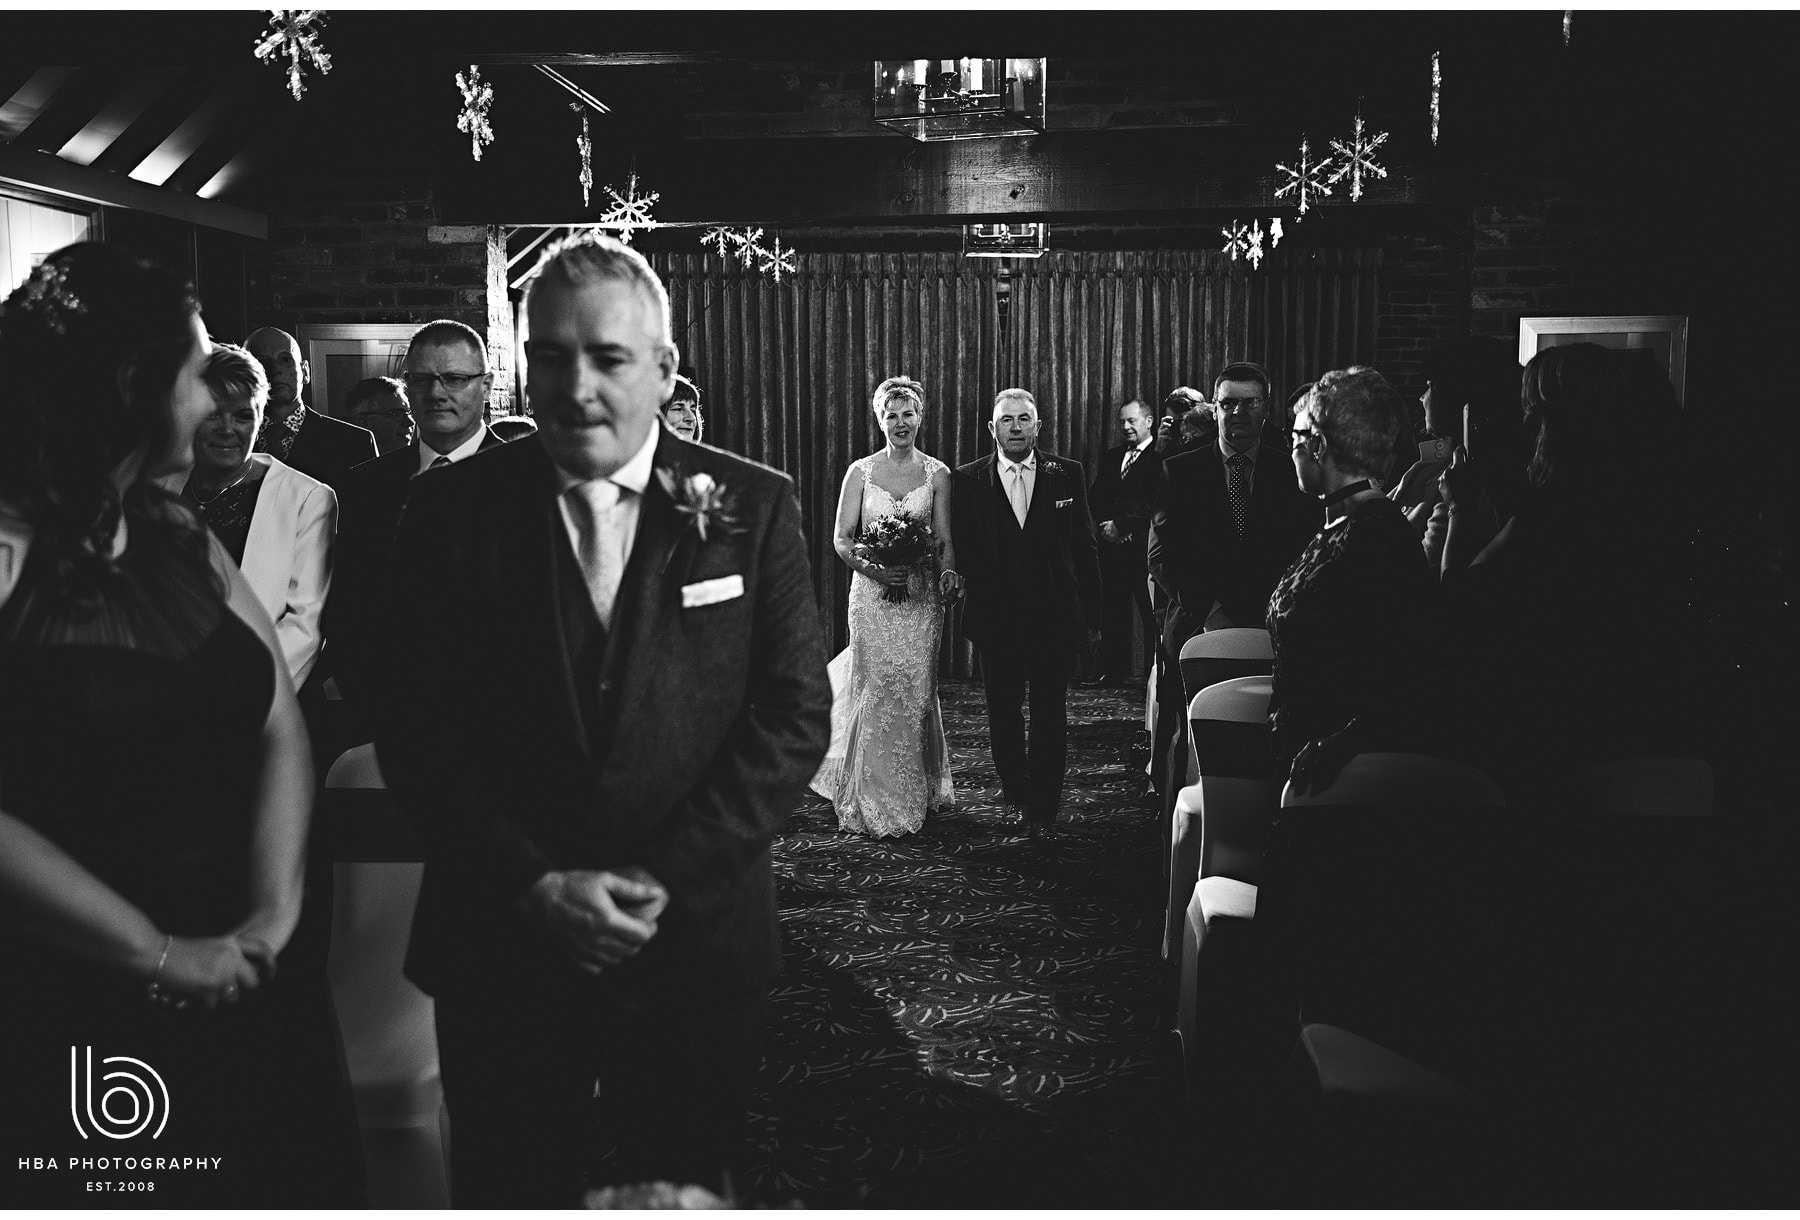 the bride walking into the ceremony